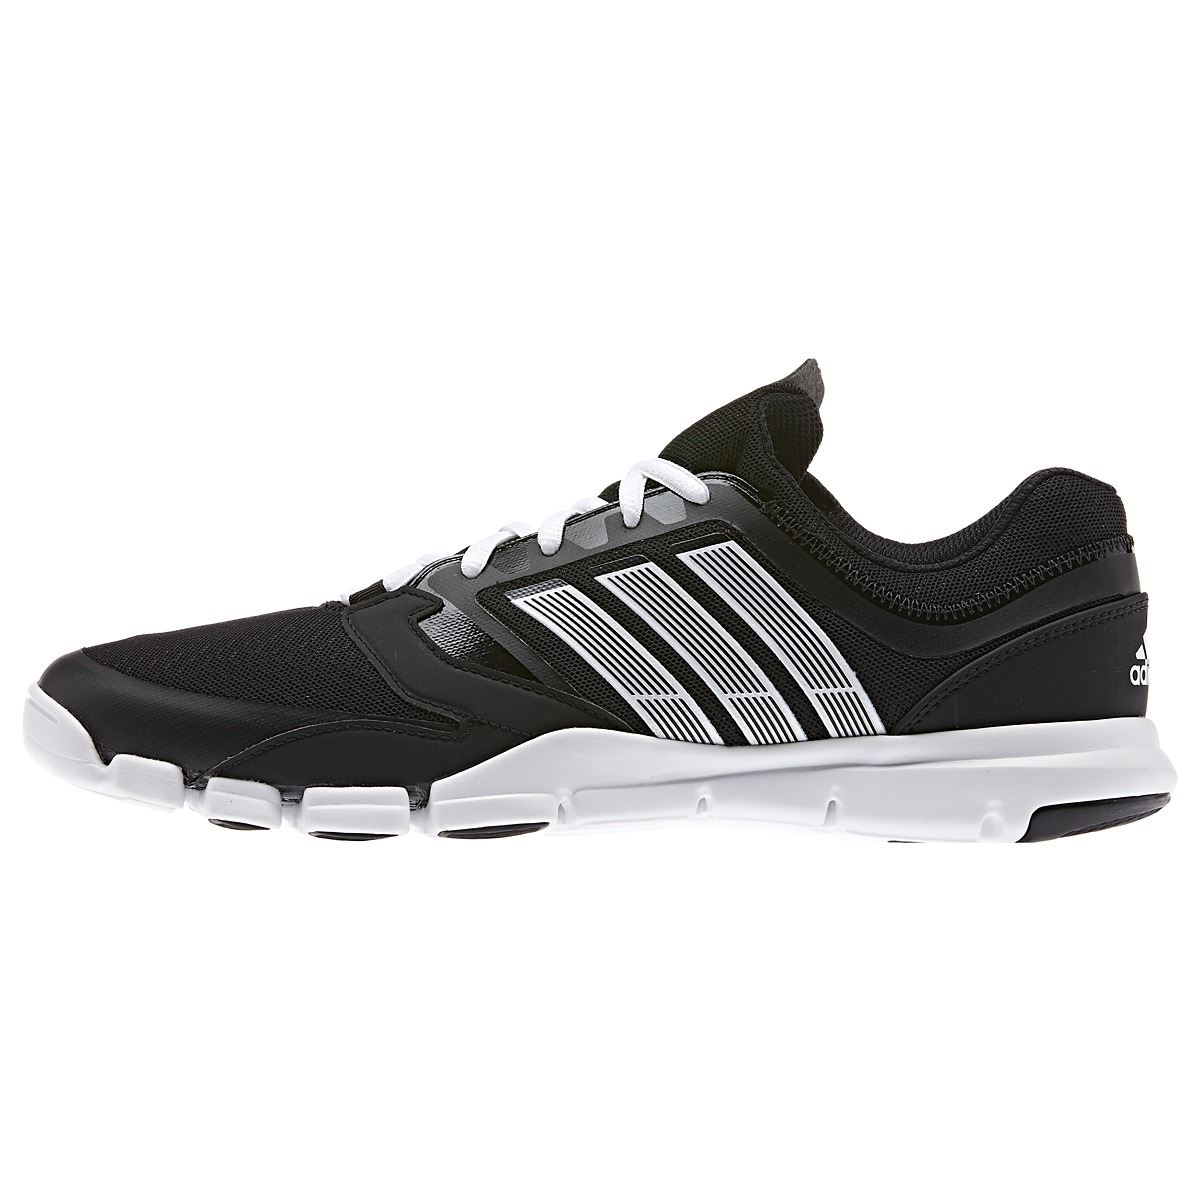 adidas adipure trainer 360 fitnessschuhe laufschuhe herren. Black Bedroom Furniture Sets. Home Design Ideas